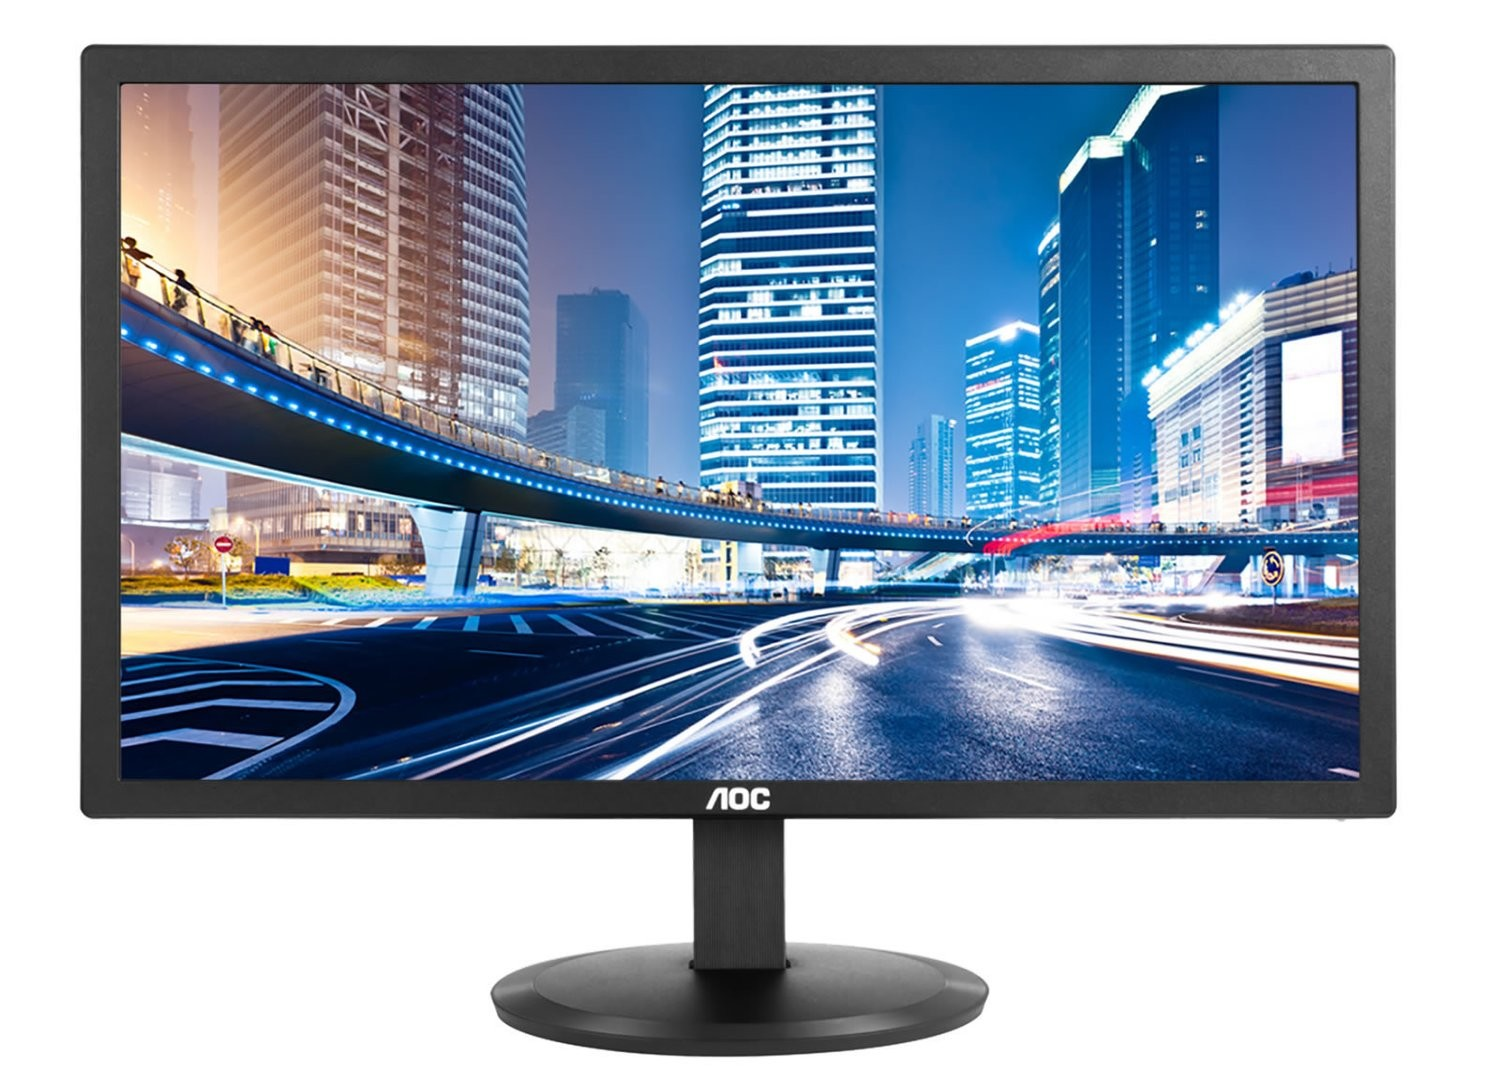 MONITOR LED 19.5IN IPS AOC I2080SW 1440X900 60HZ 178/178 GRADOS 6MS 1000:1 TIPICA 20000000:1 DCR 250CM/M2 VGA VESA 100X100 21W KENSINGTON LOCK